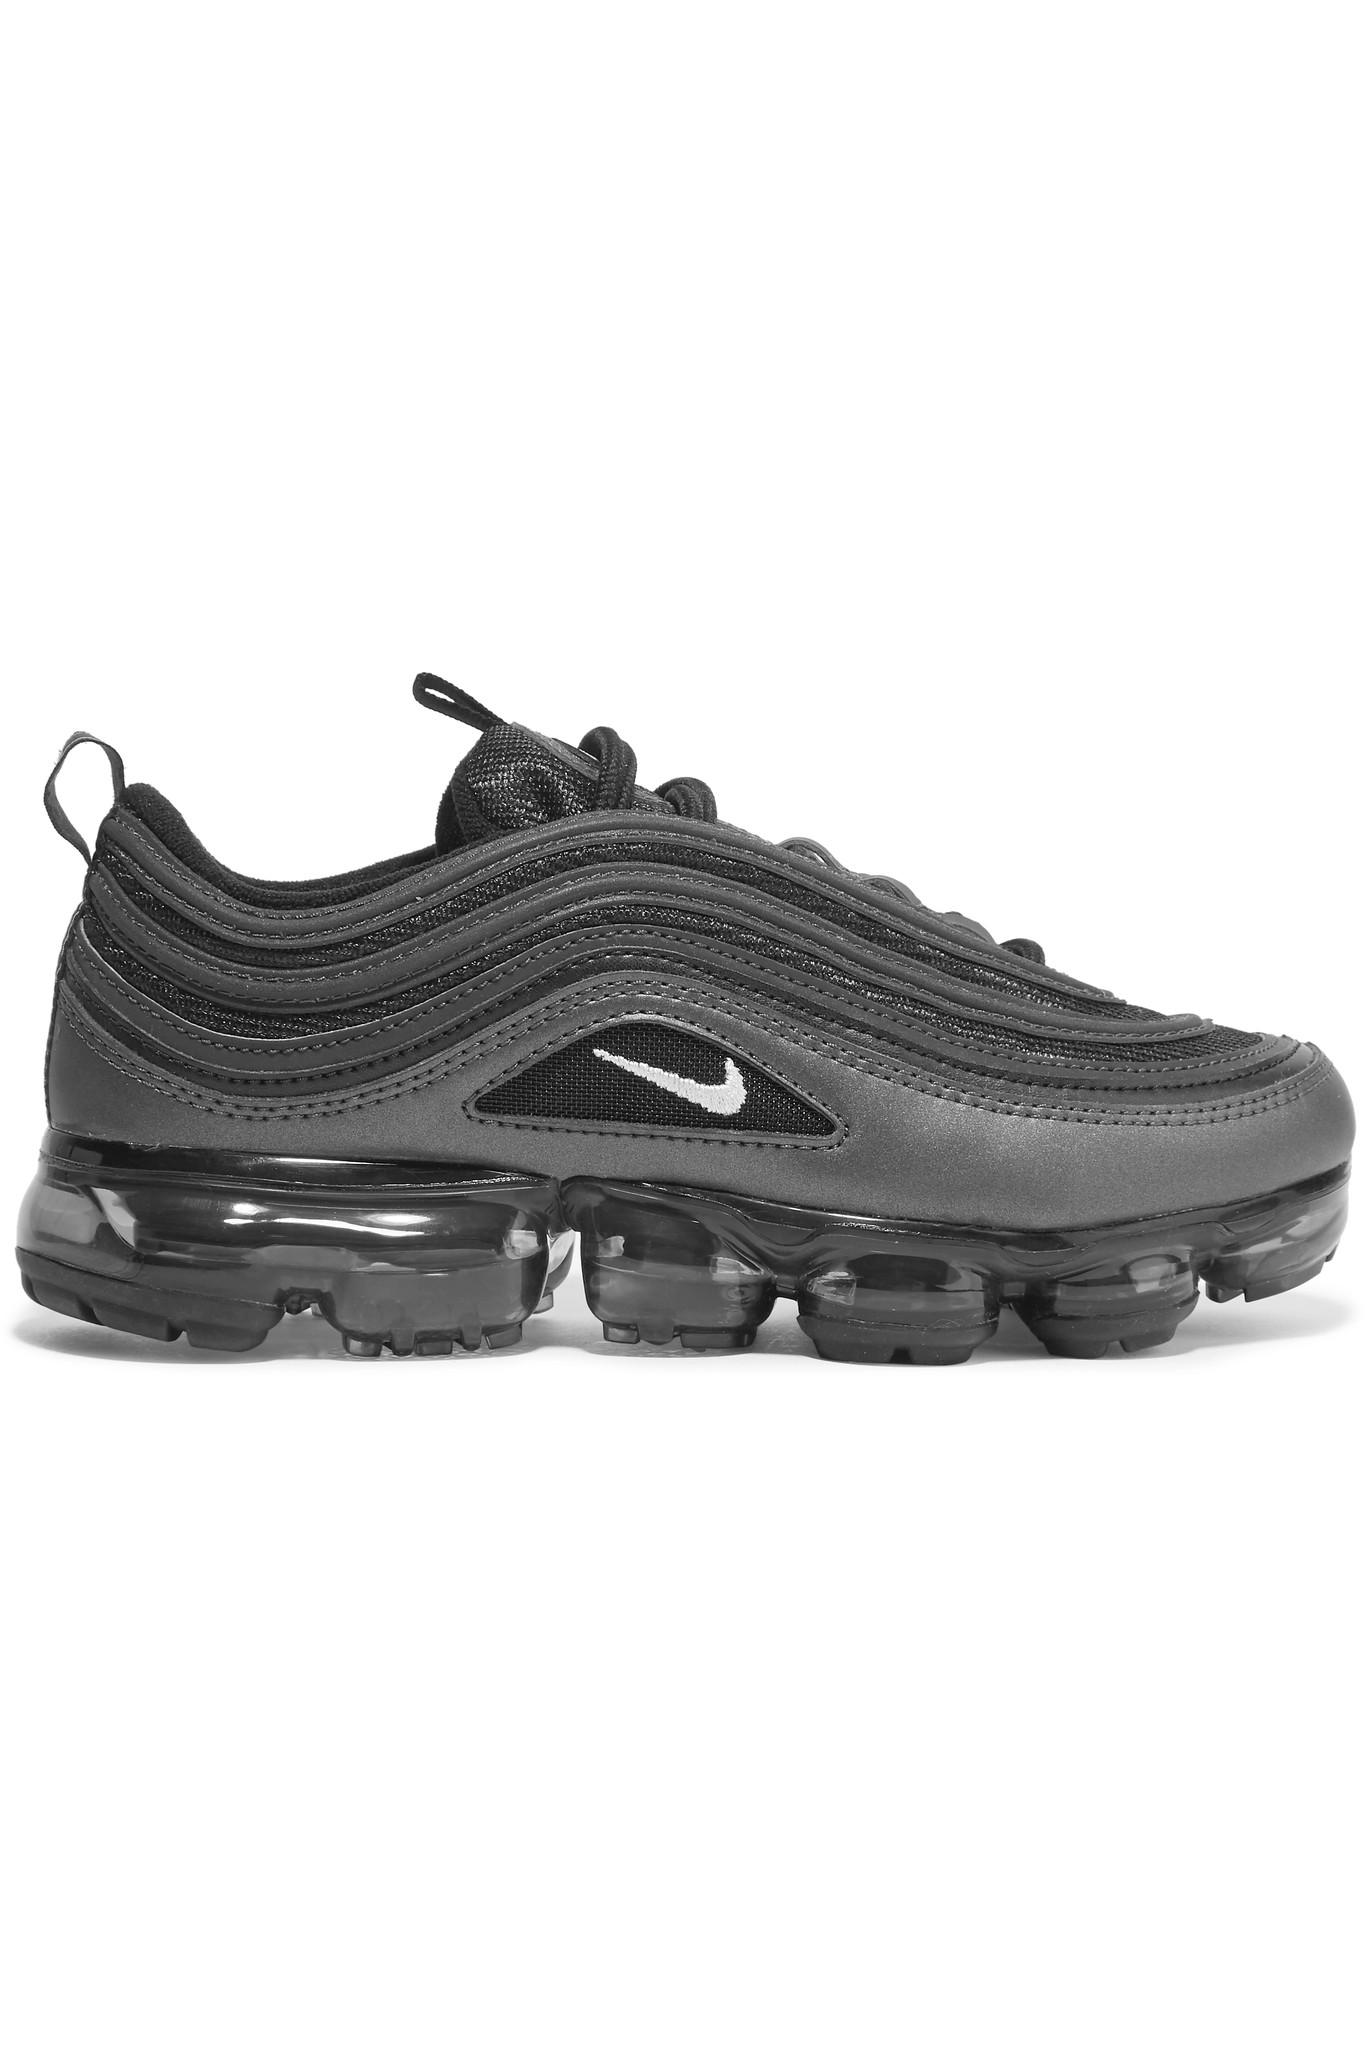 da4f973397f7c Nike Air Vapormax 97 Faux Leather And Mesh Sneakers in Black - Lyst